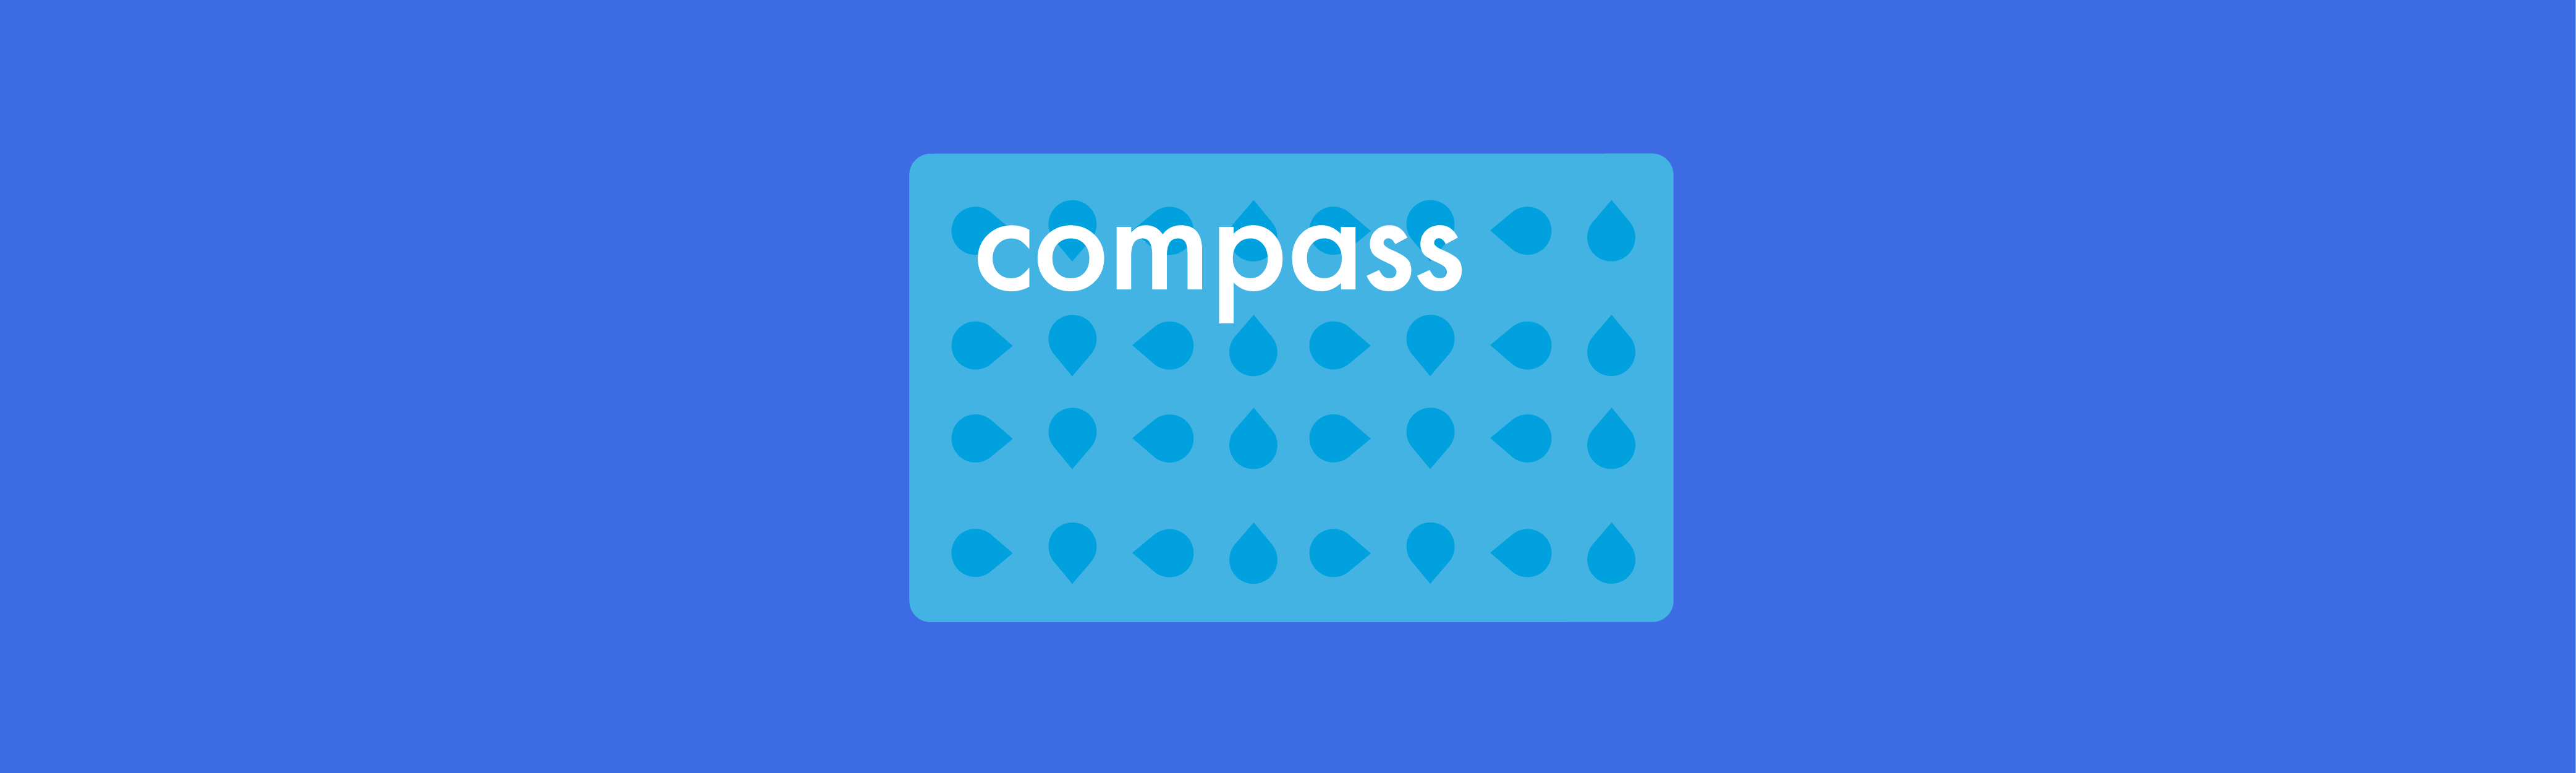 Colourful illustration of compass card